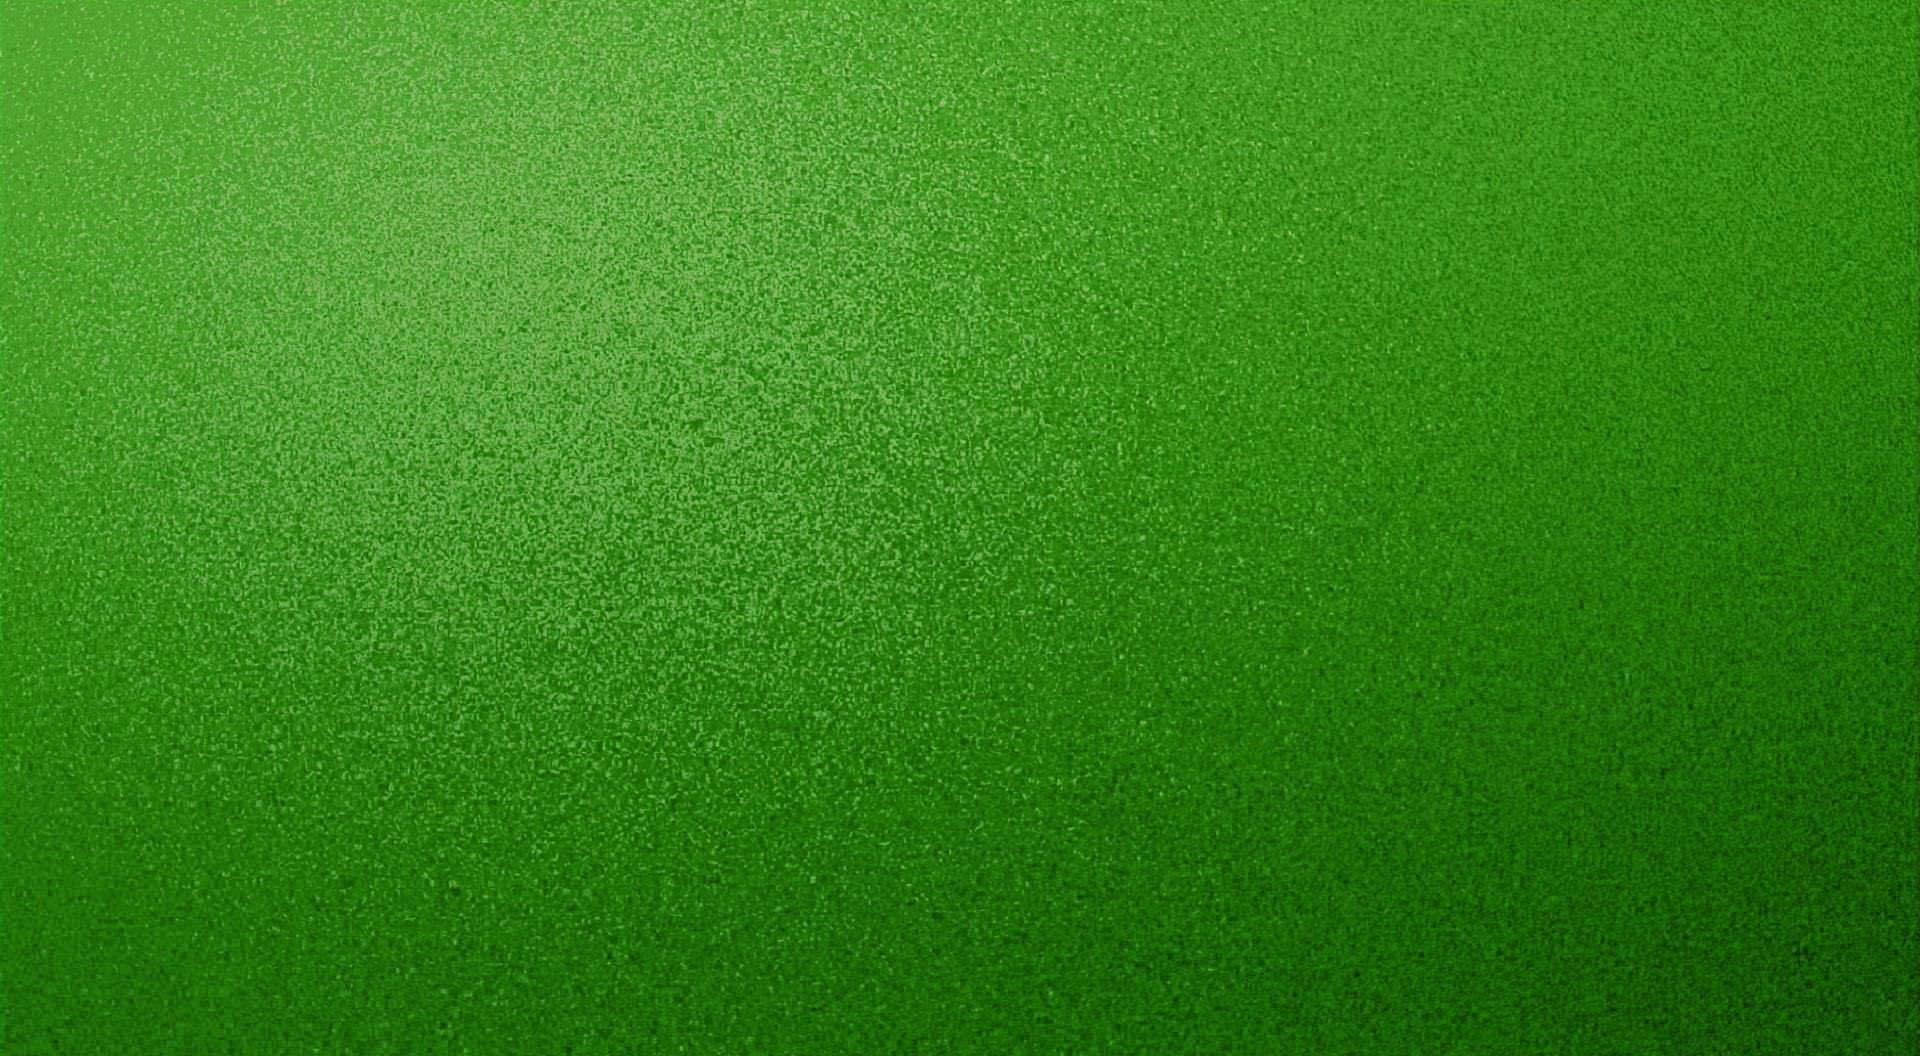 Color And Paint 21 Green Textured Backgrounds Wallpapers Pictures